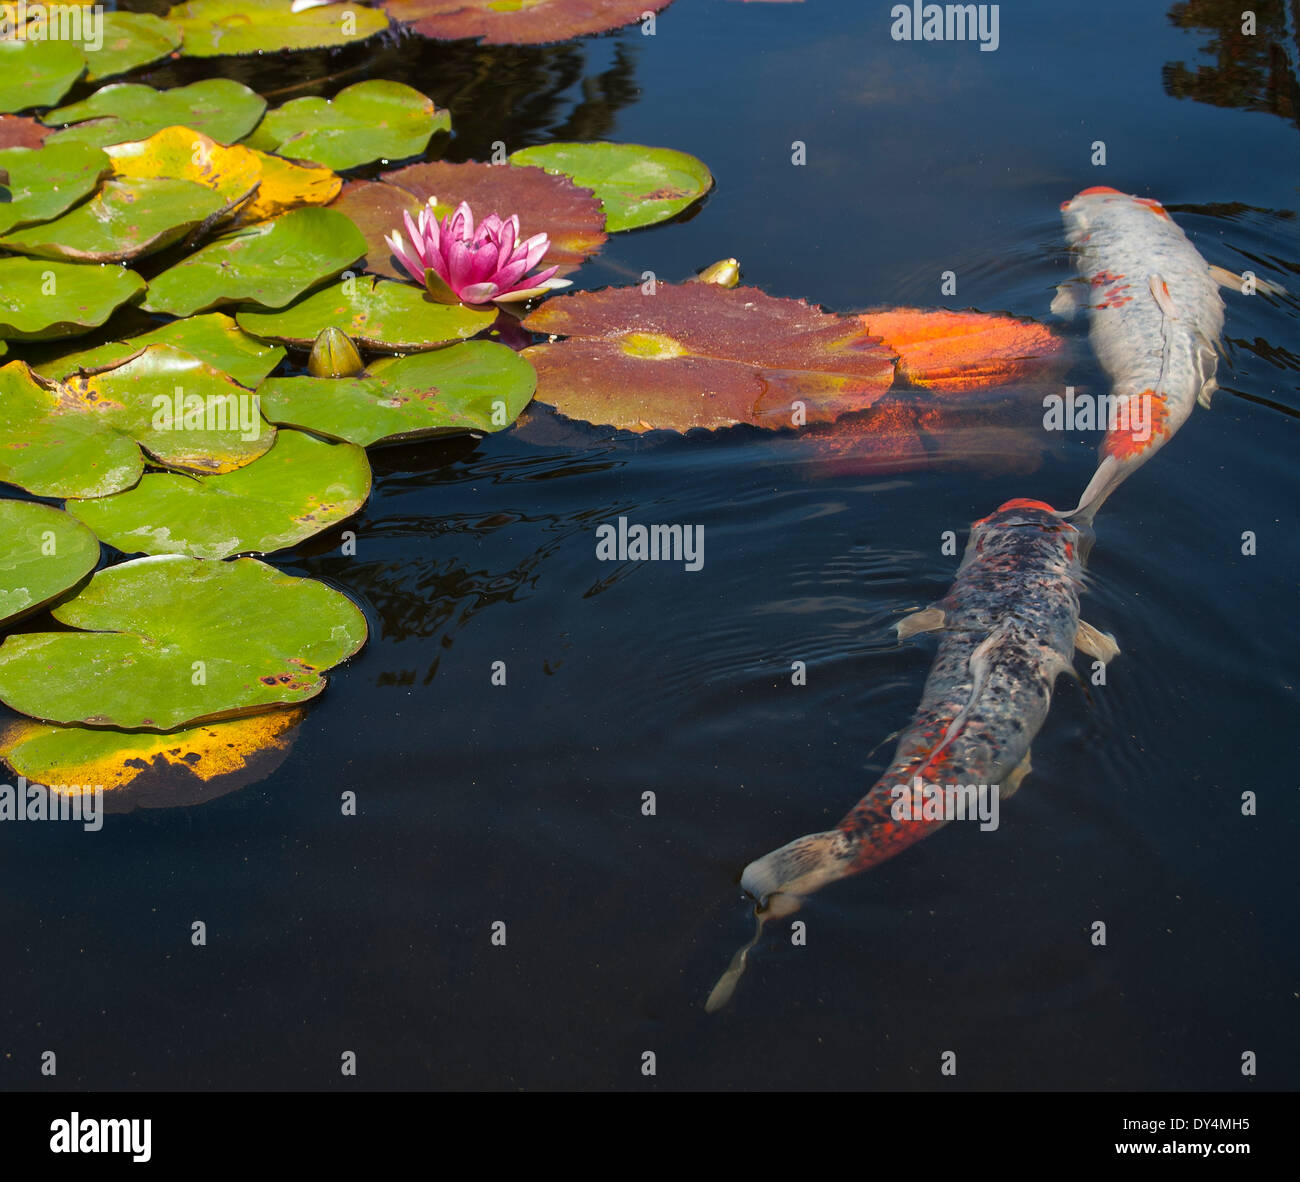 A Lily Pond With A Lotus Flower Blooming While Two Koi Fish Swim